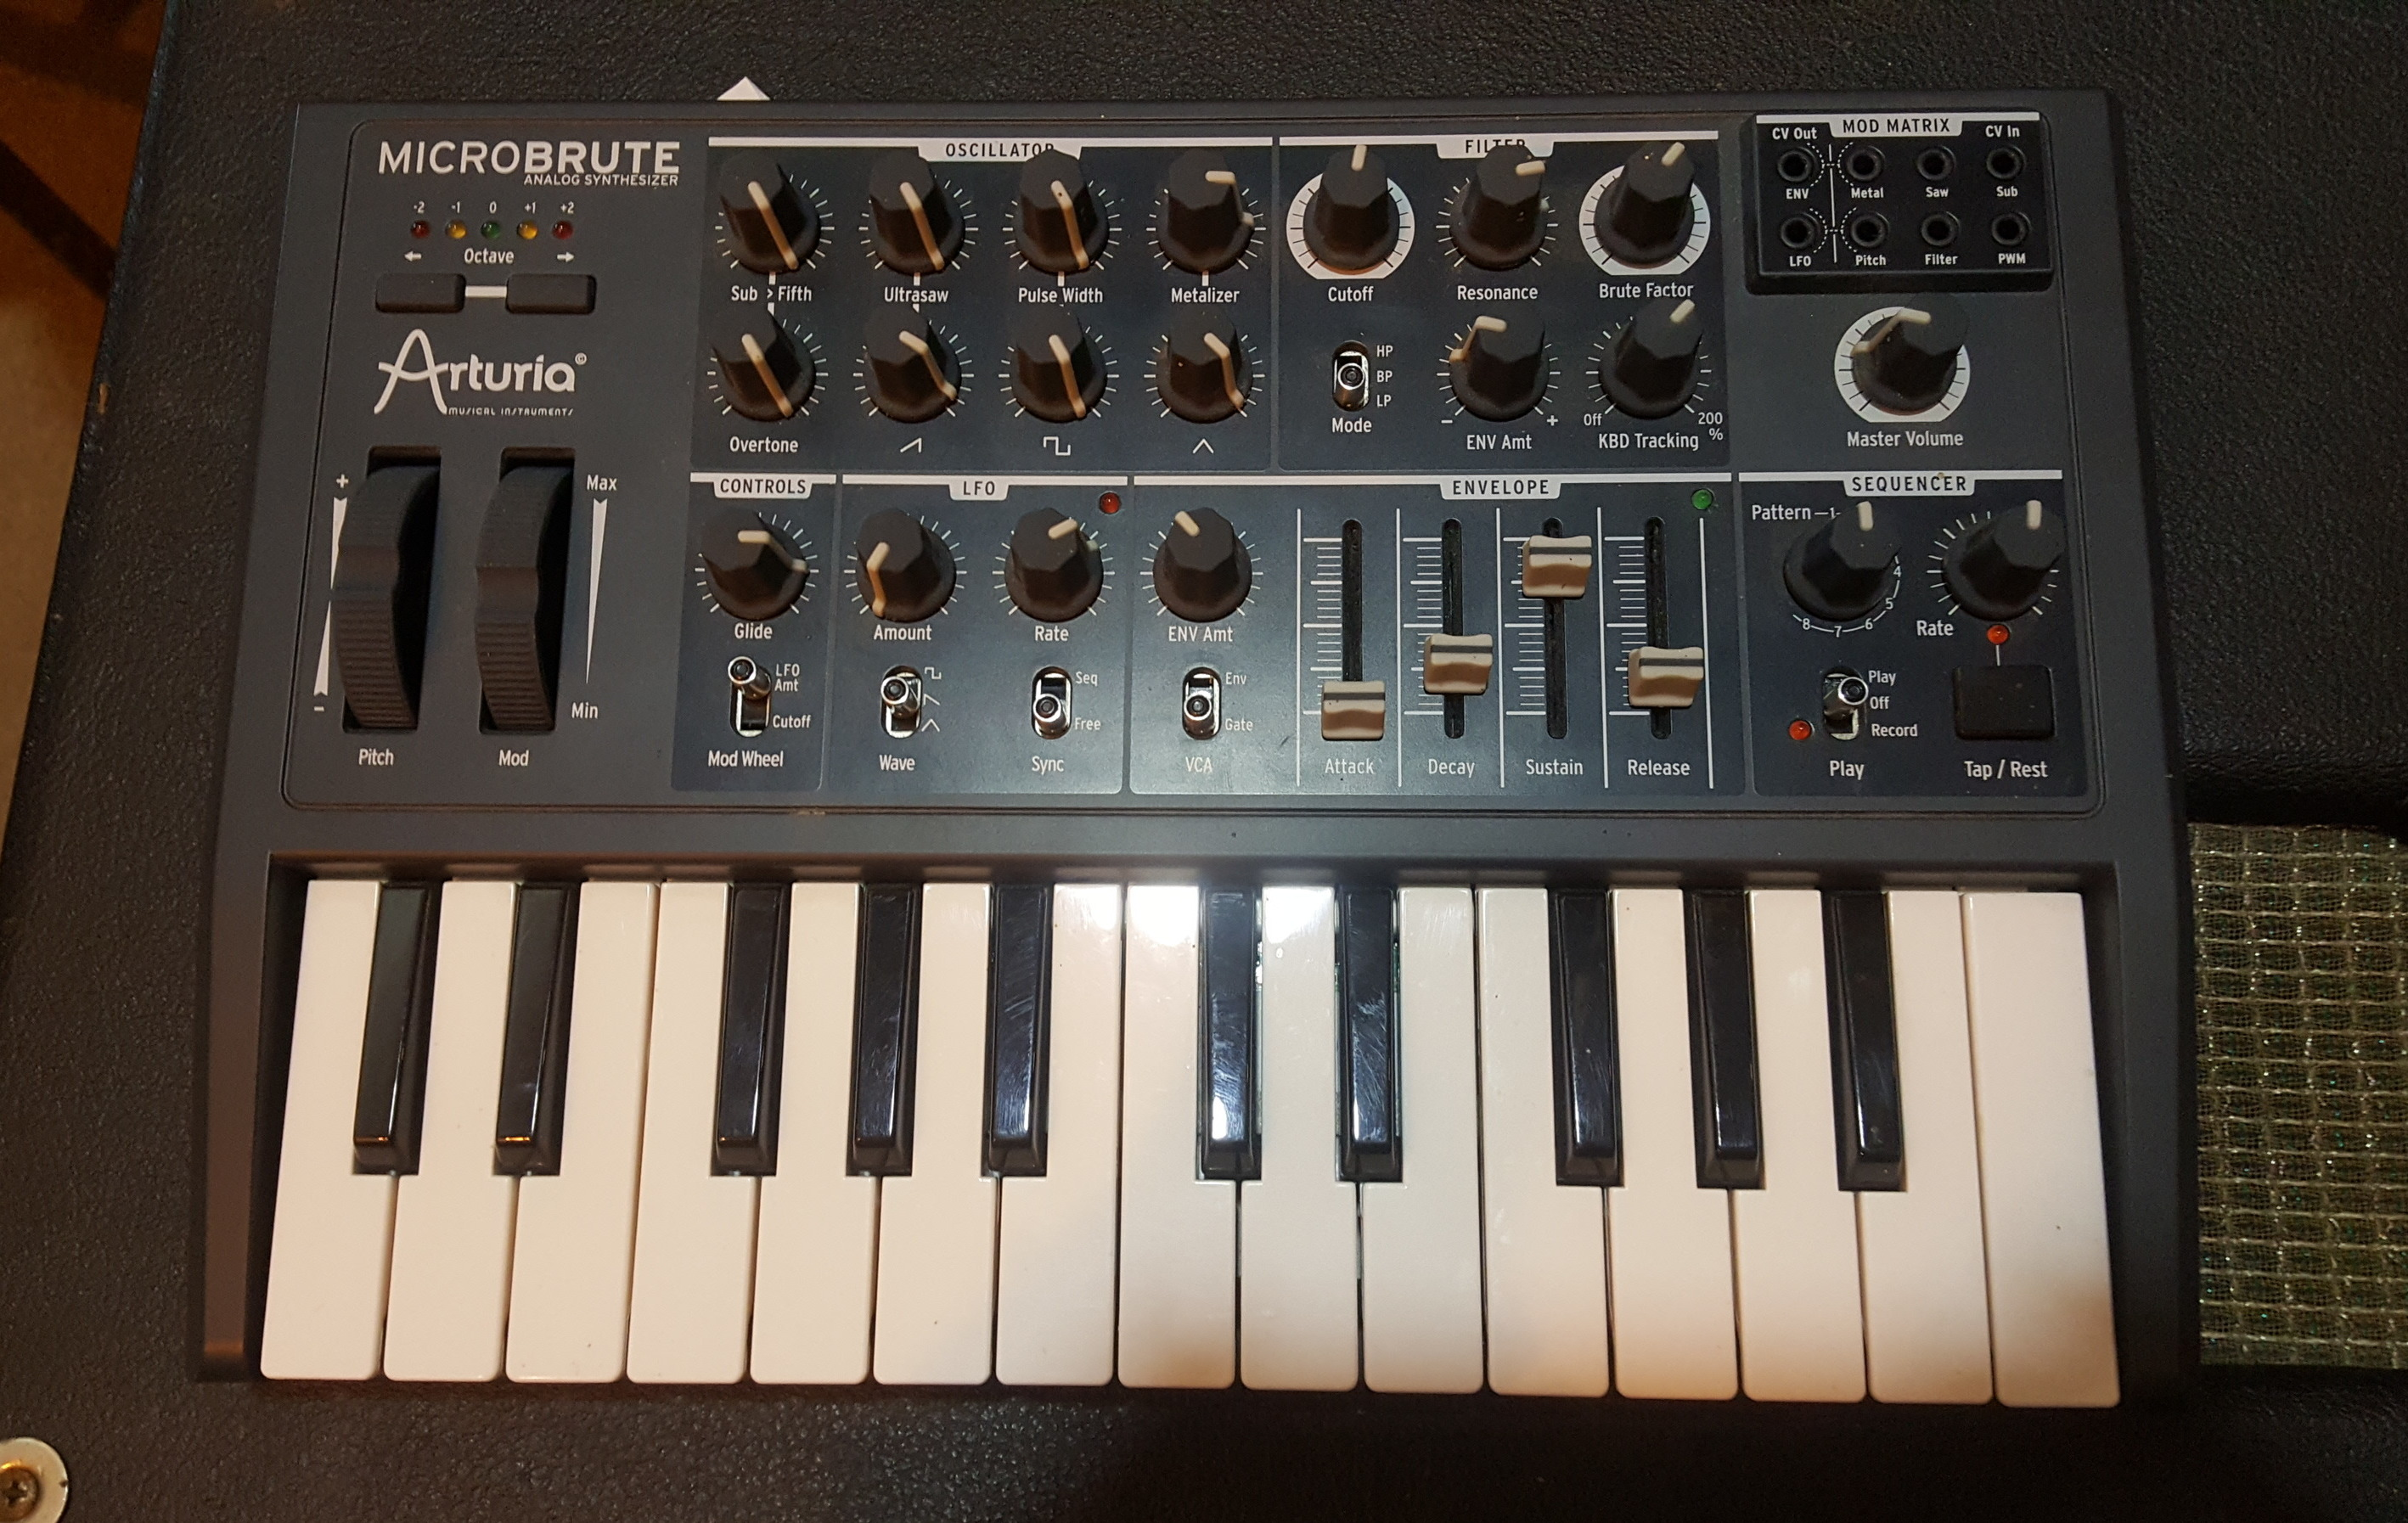 ARTURIA MICROBRUTE 25-Key Analog Synthesizer with Power Supply!